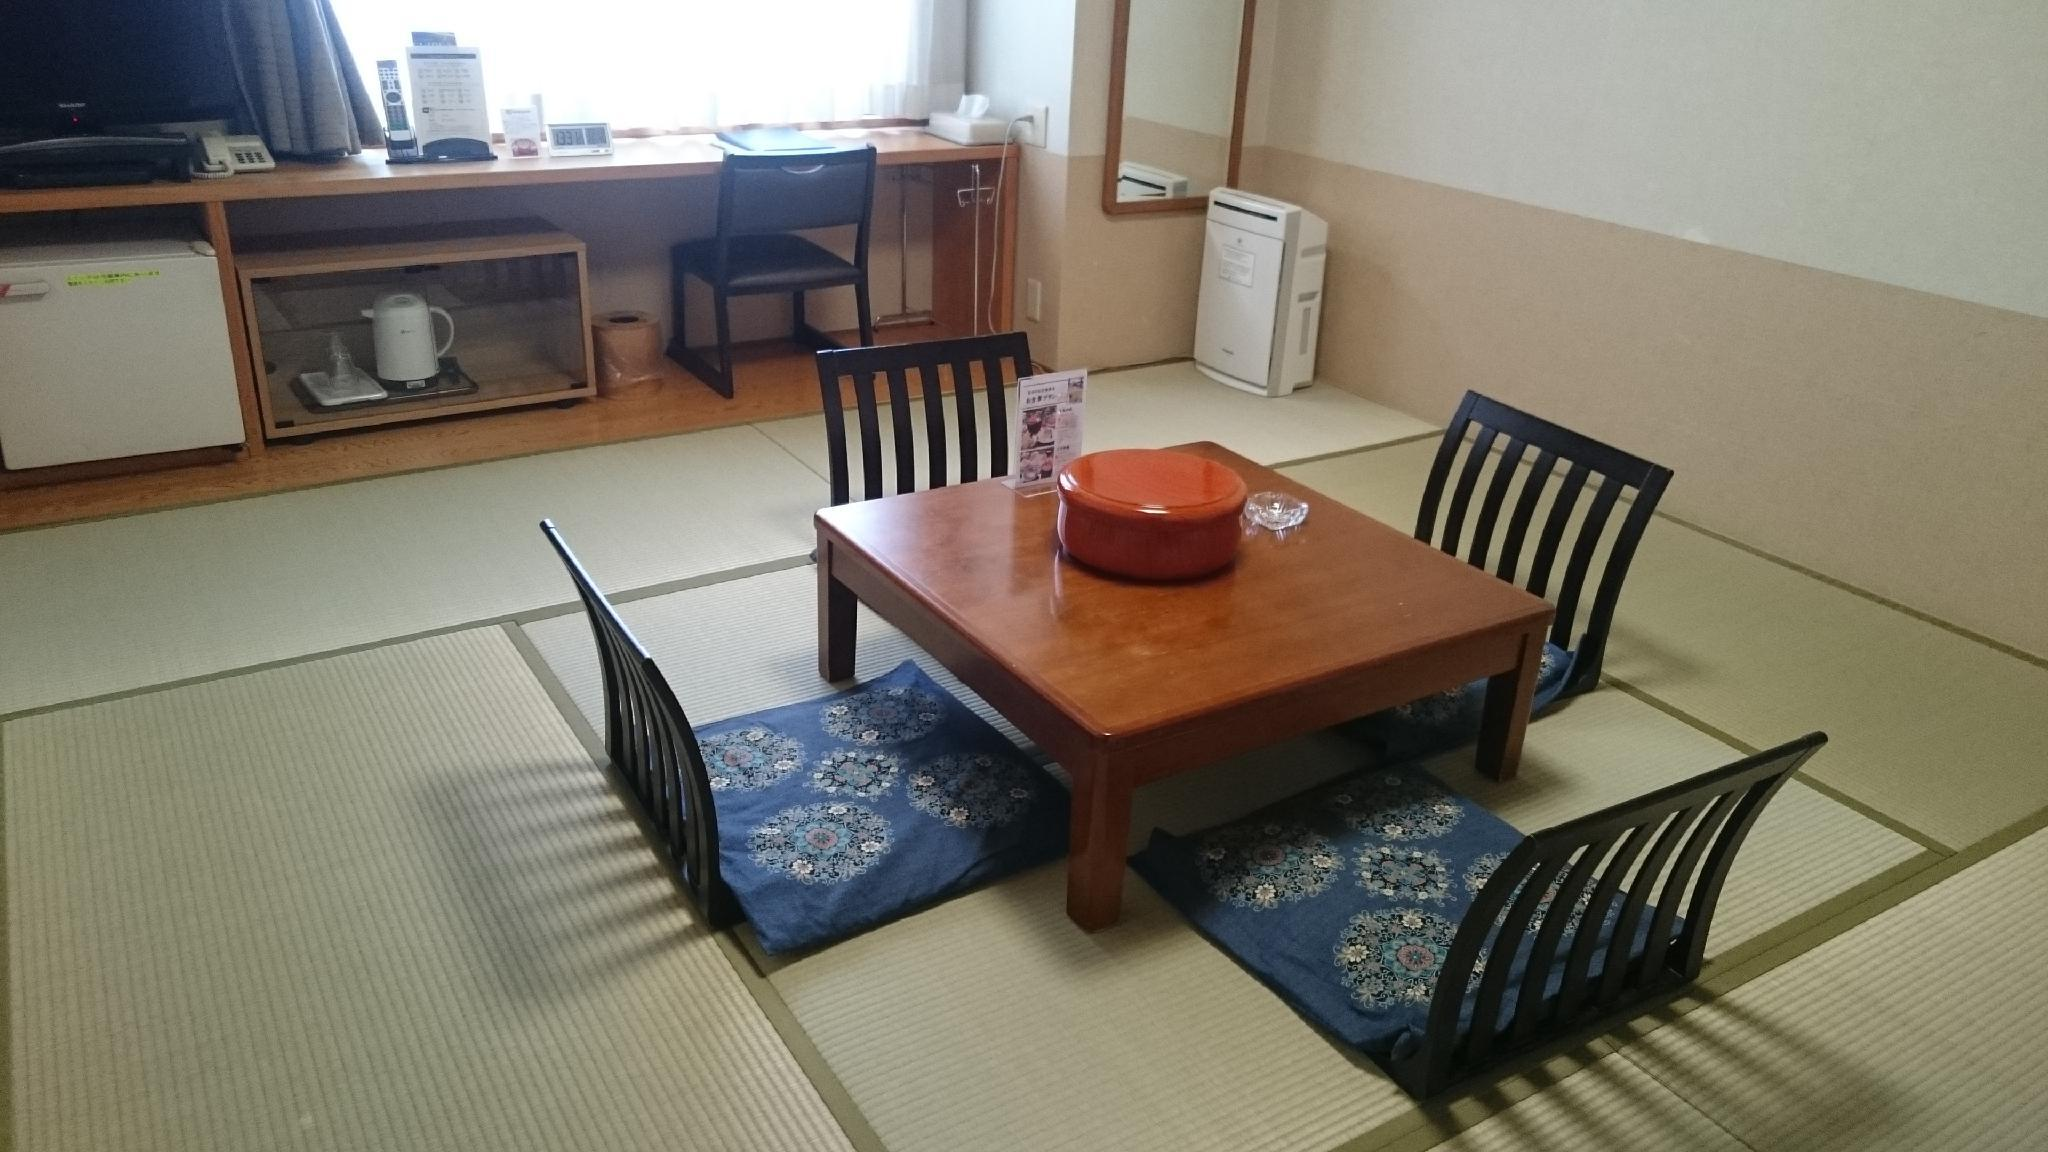 和室(4名・禁煙) (Japanese Style Room for 4 People - Non-Smoking)